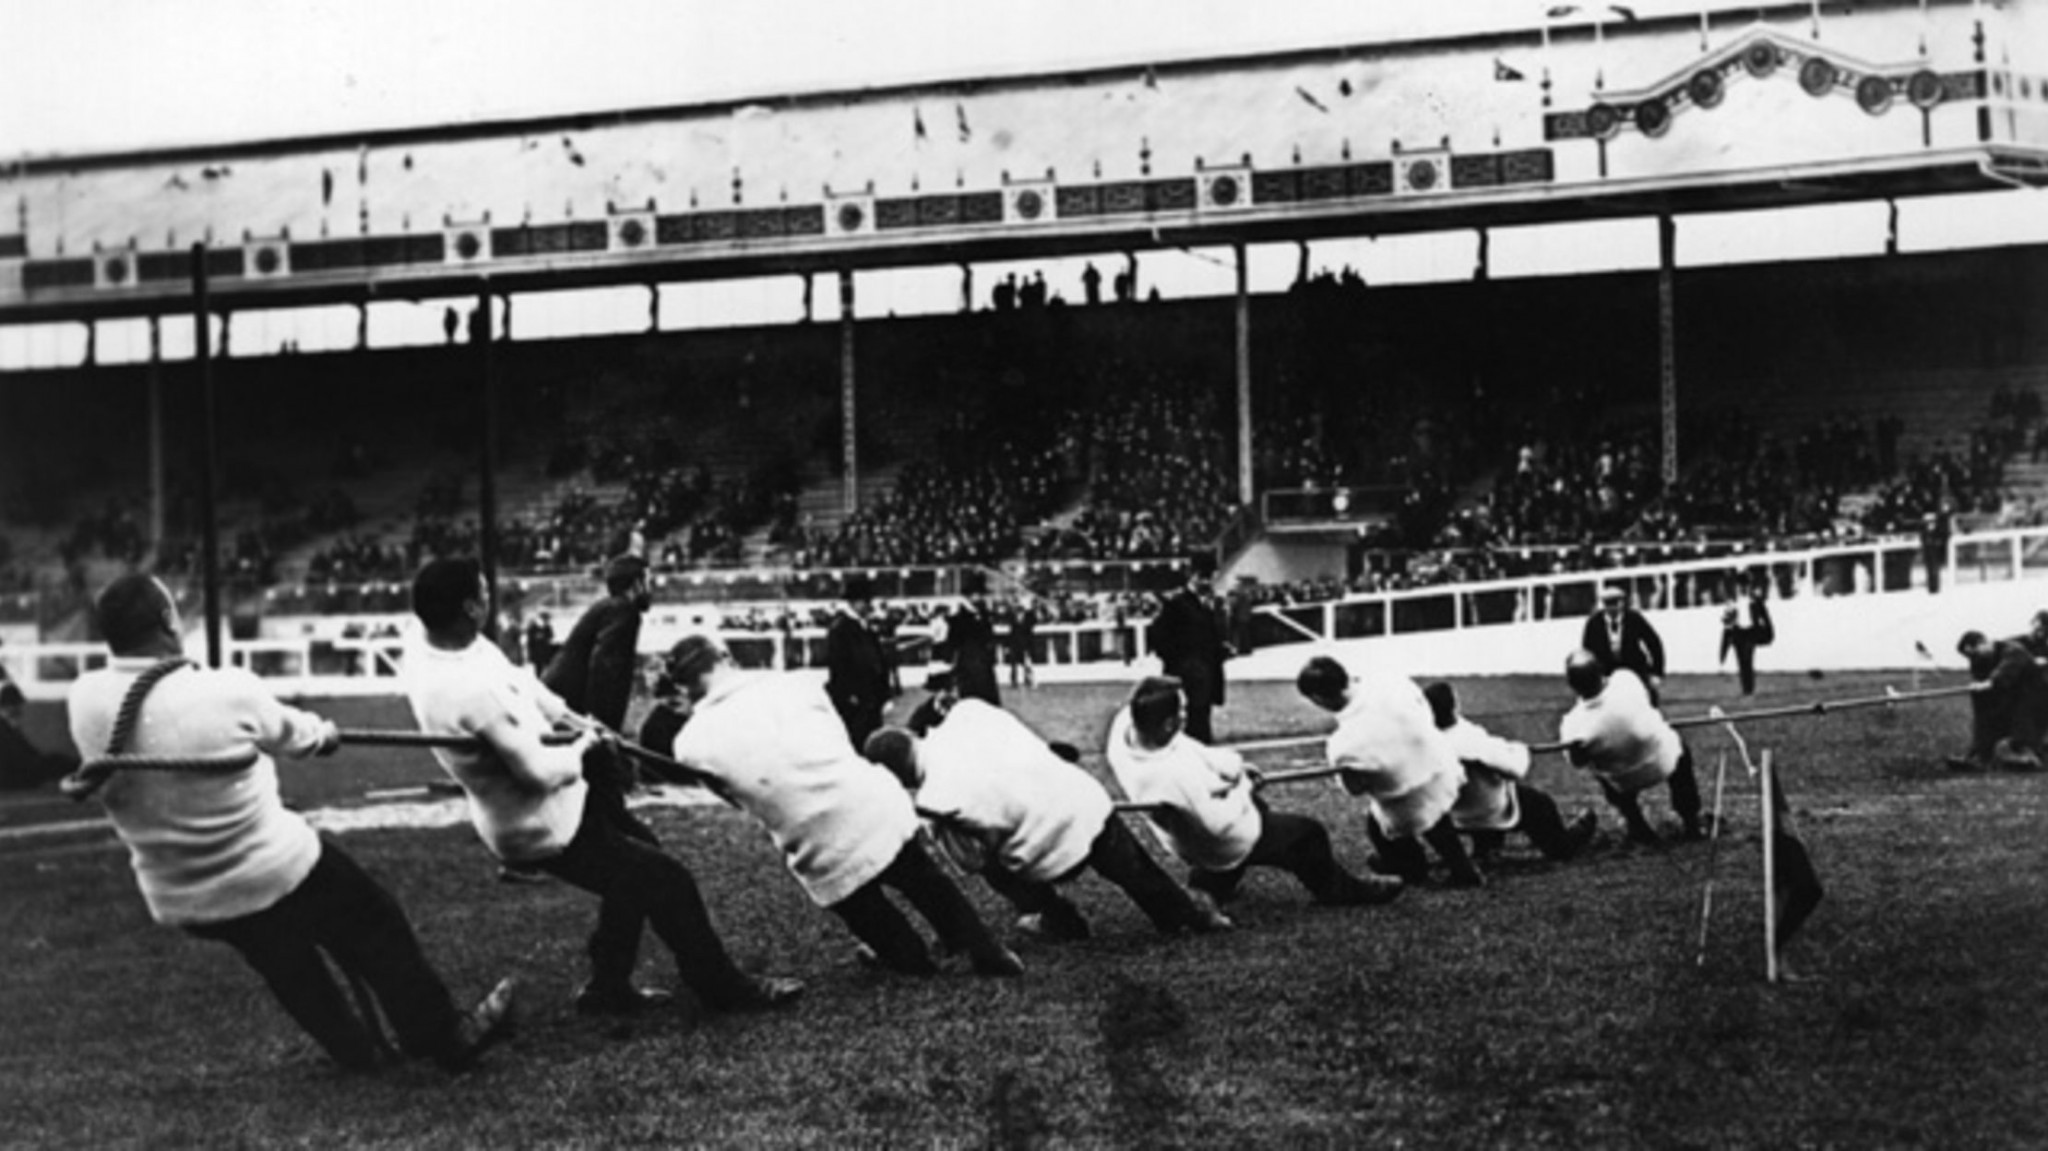 Tug of war appeared in every Olympic Games from Paris 1900 to Antwerp 1920 ©Getty Images